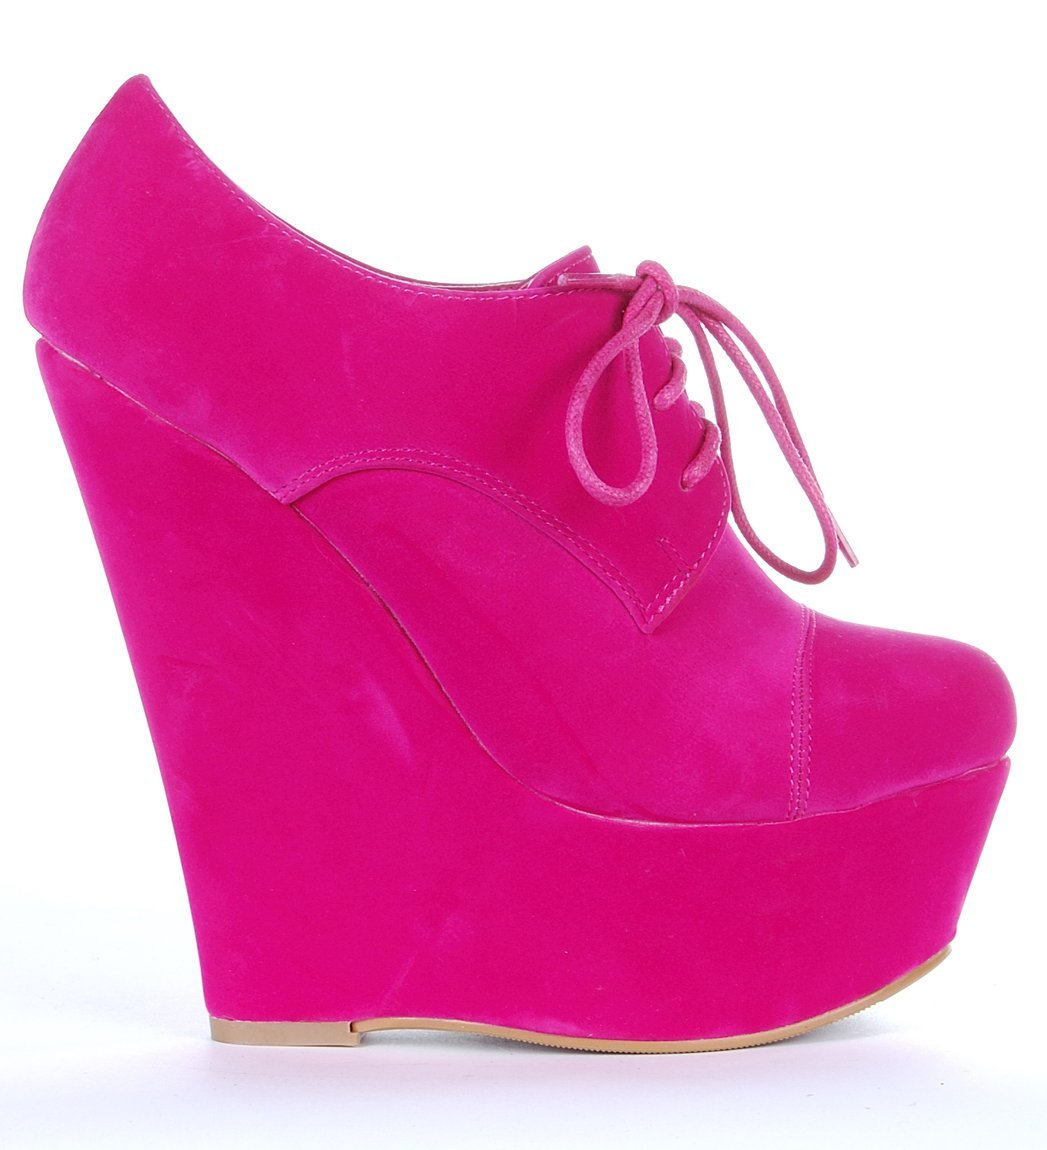 Hot Pink Wedge Heel Shoes | Tsaa Heel